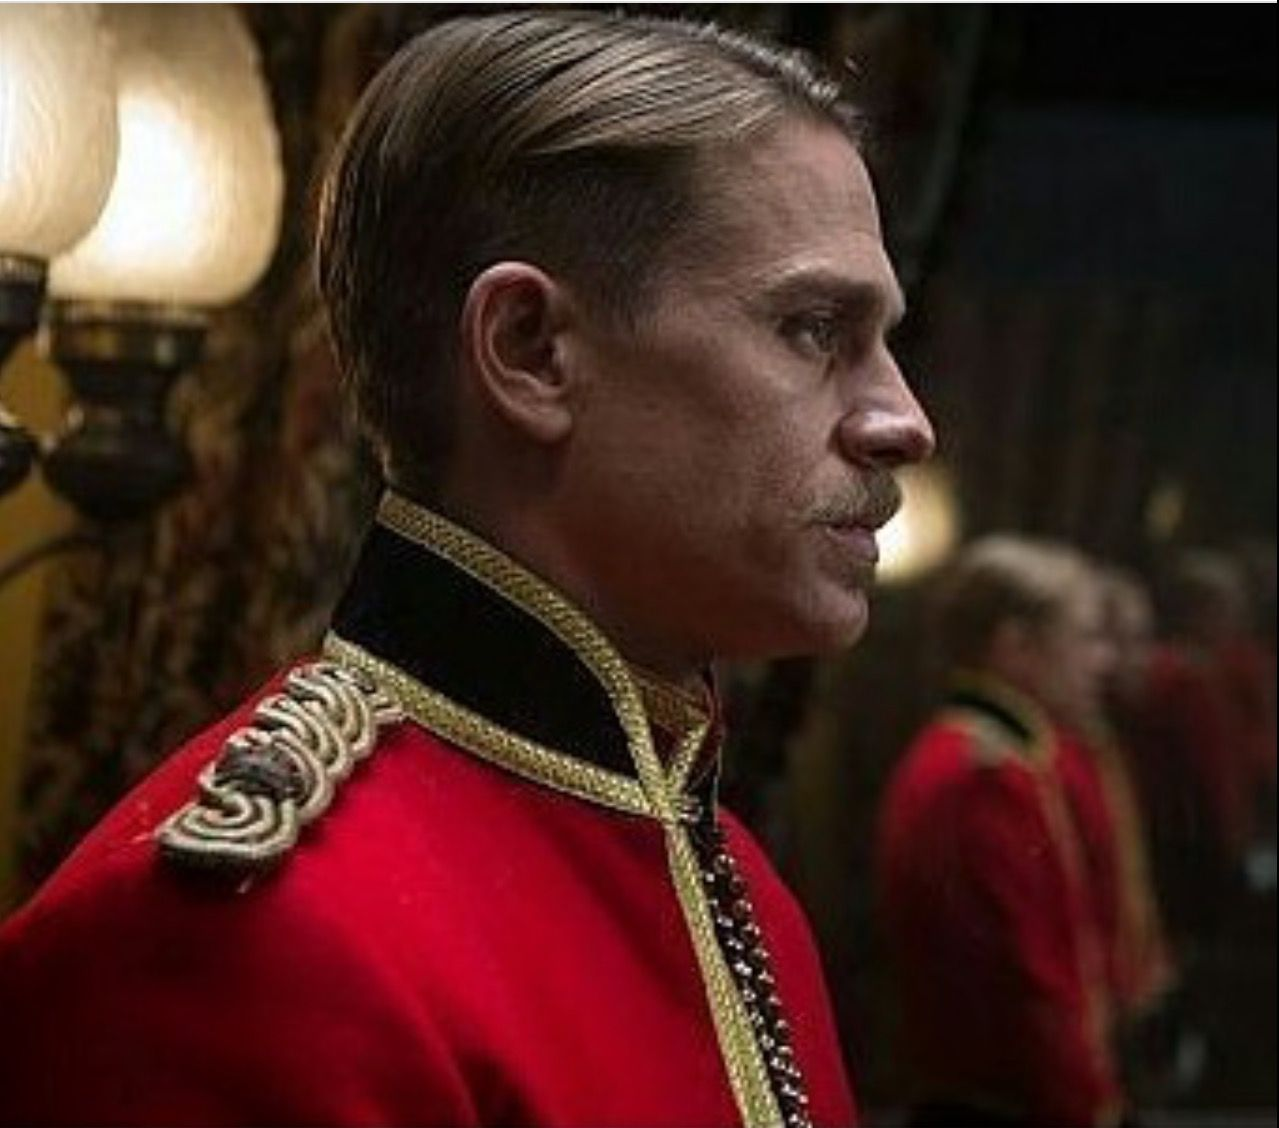 Charlie hunnam in lost city of z lost city of z charlie